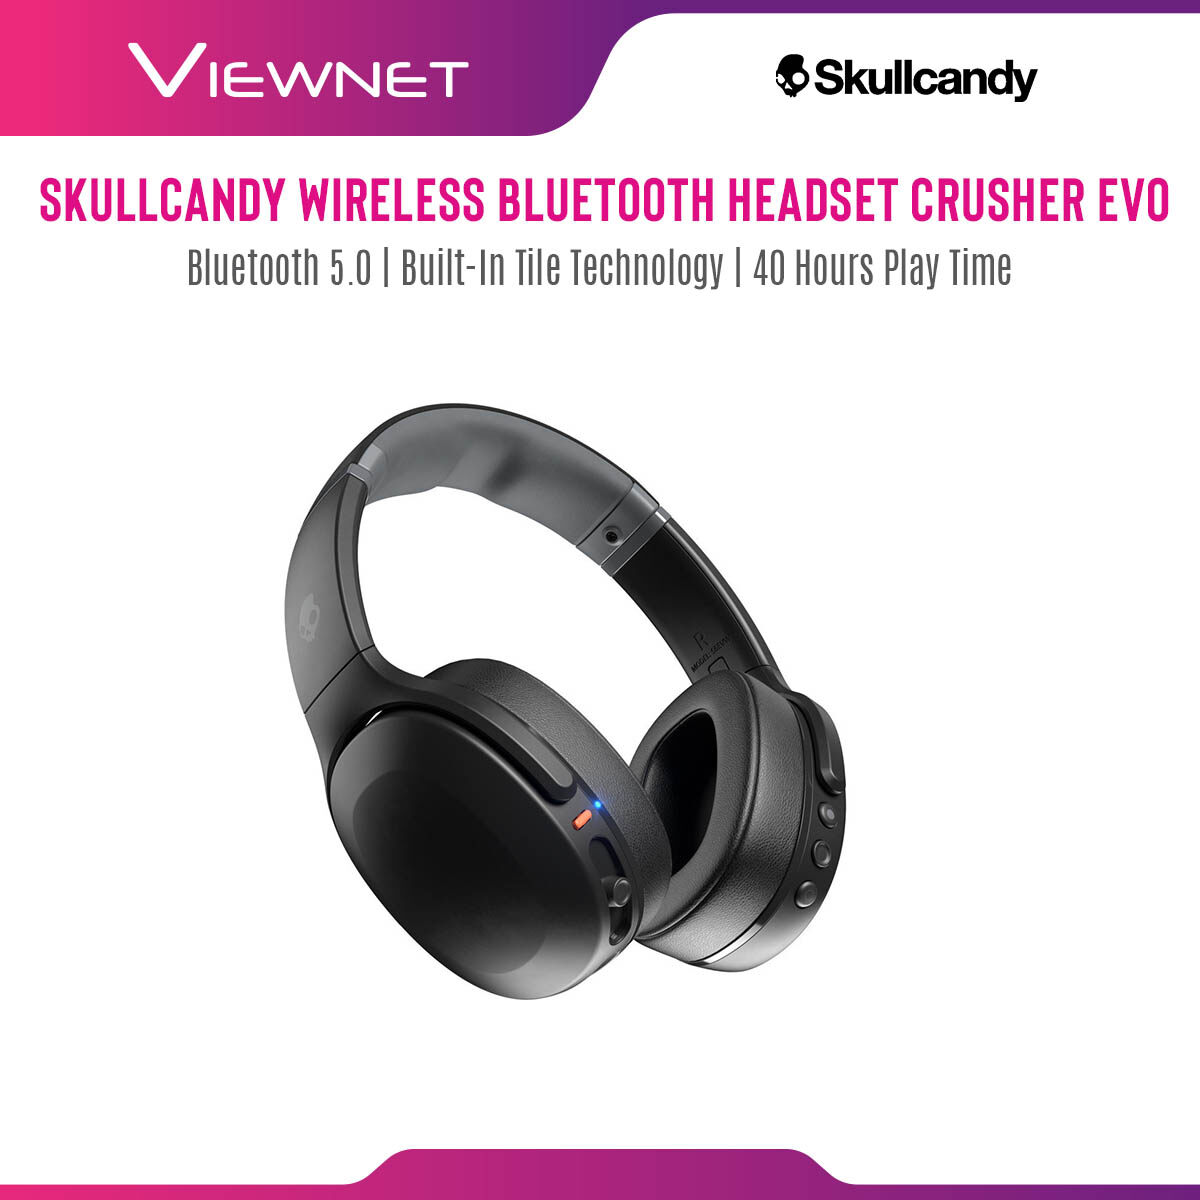 Skullcandy Crusher Evo Sensory Bass Headphones with Personal 40 Hours of Battery + Rapid Charge